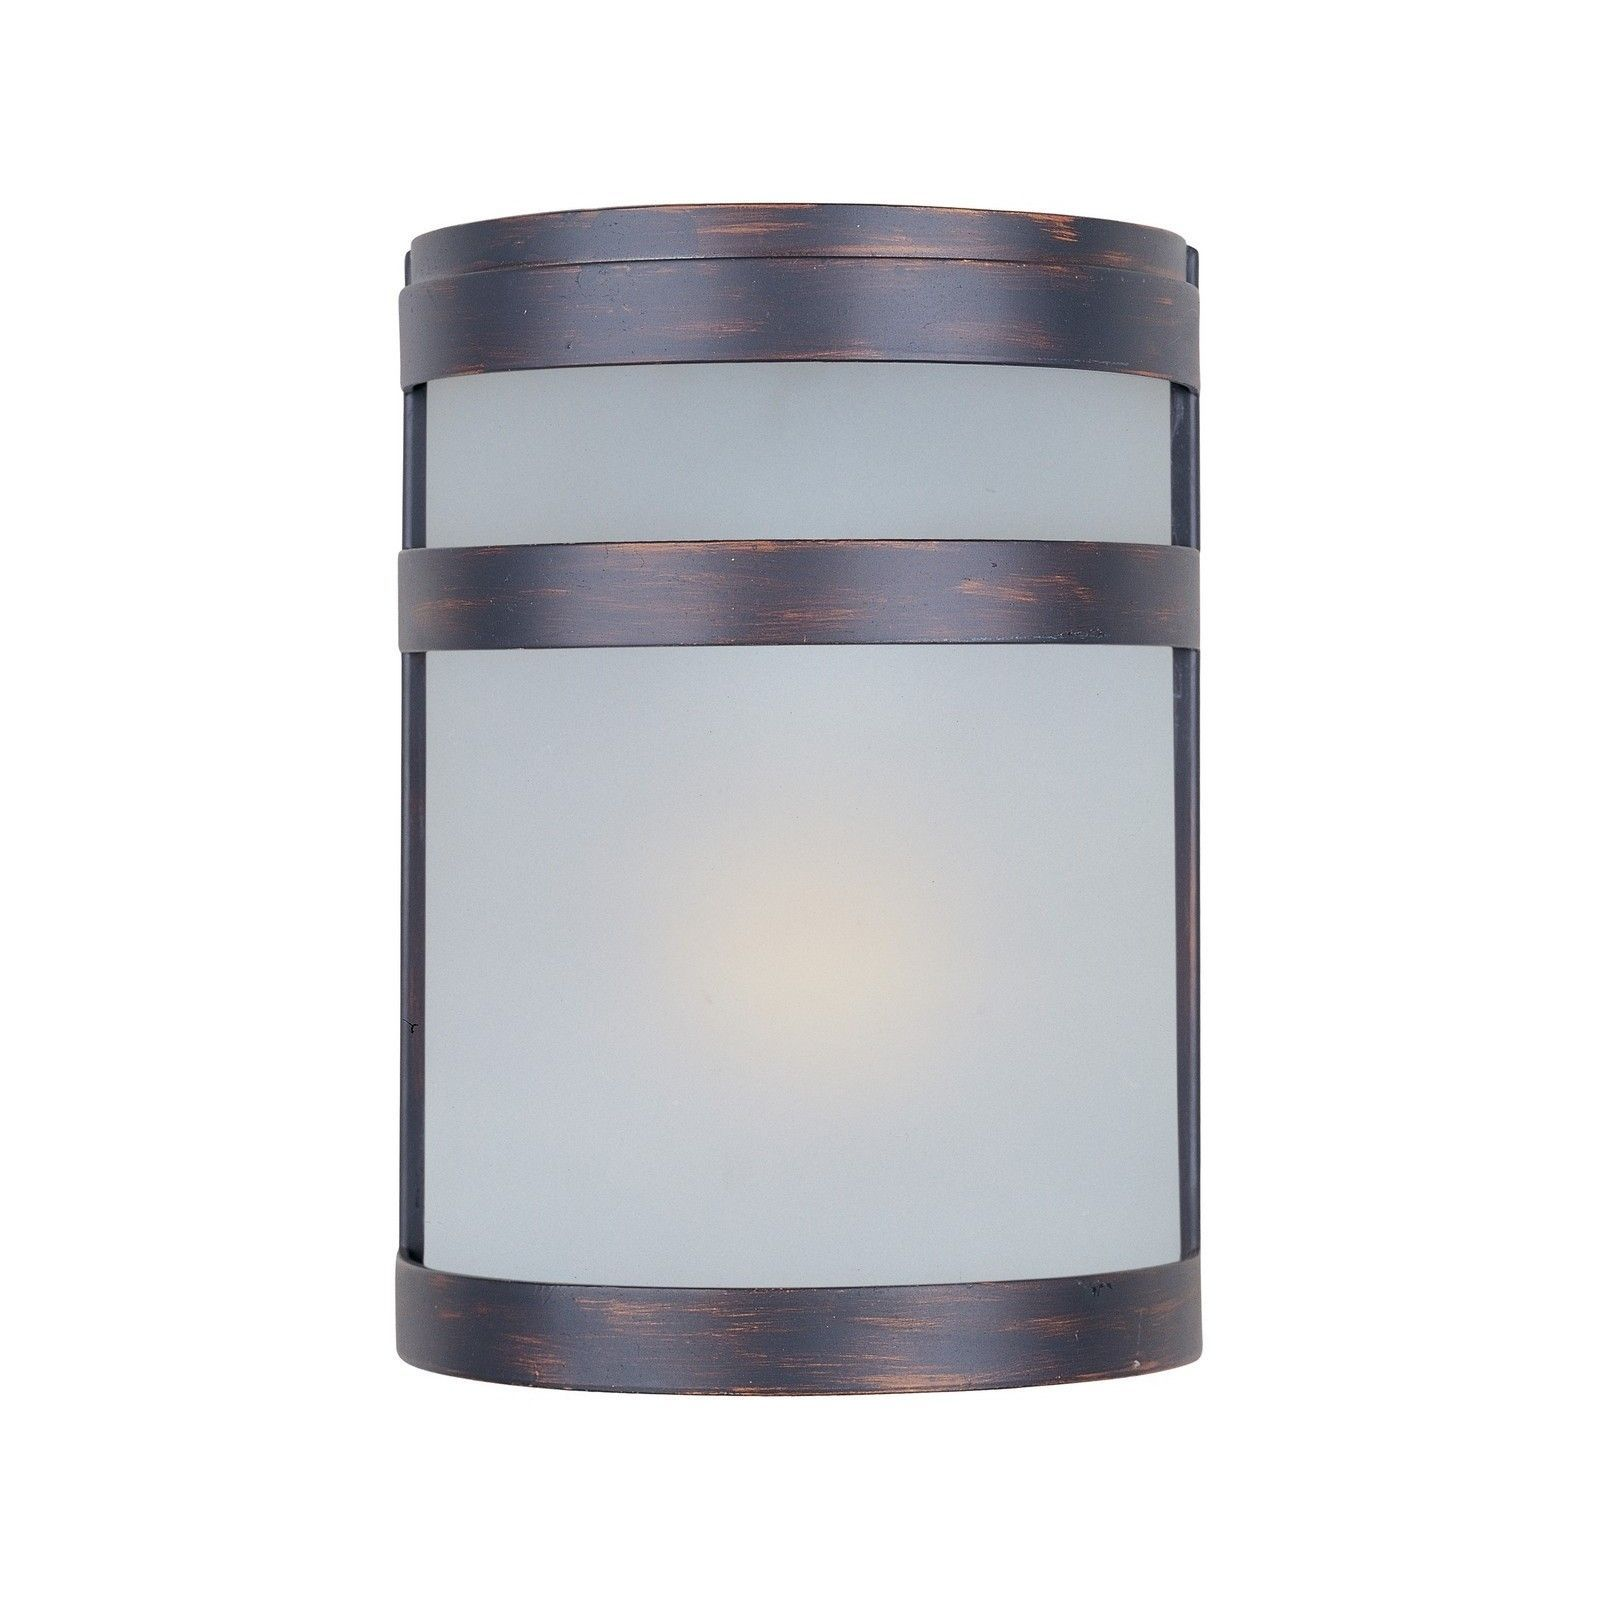 Maxim bronze stainless steel frosted shade arc ee light outdoor